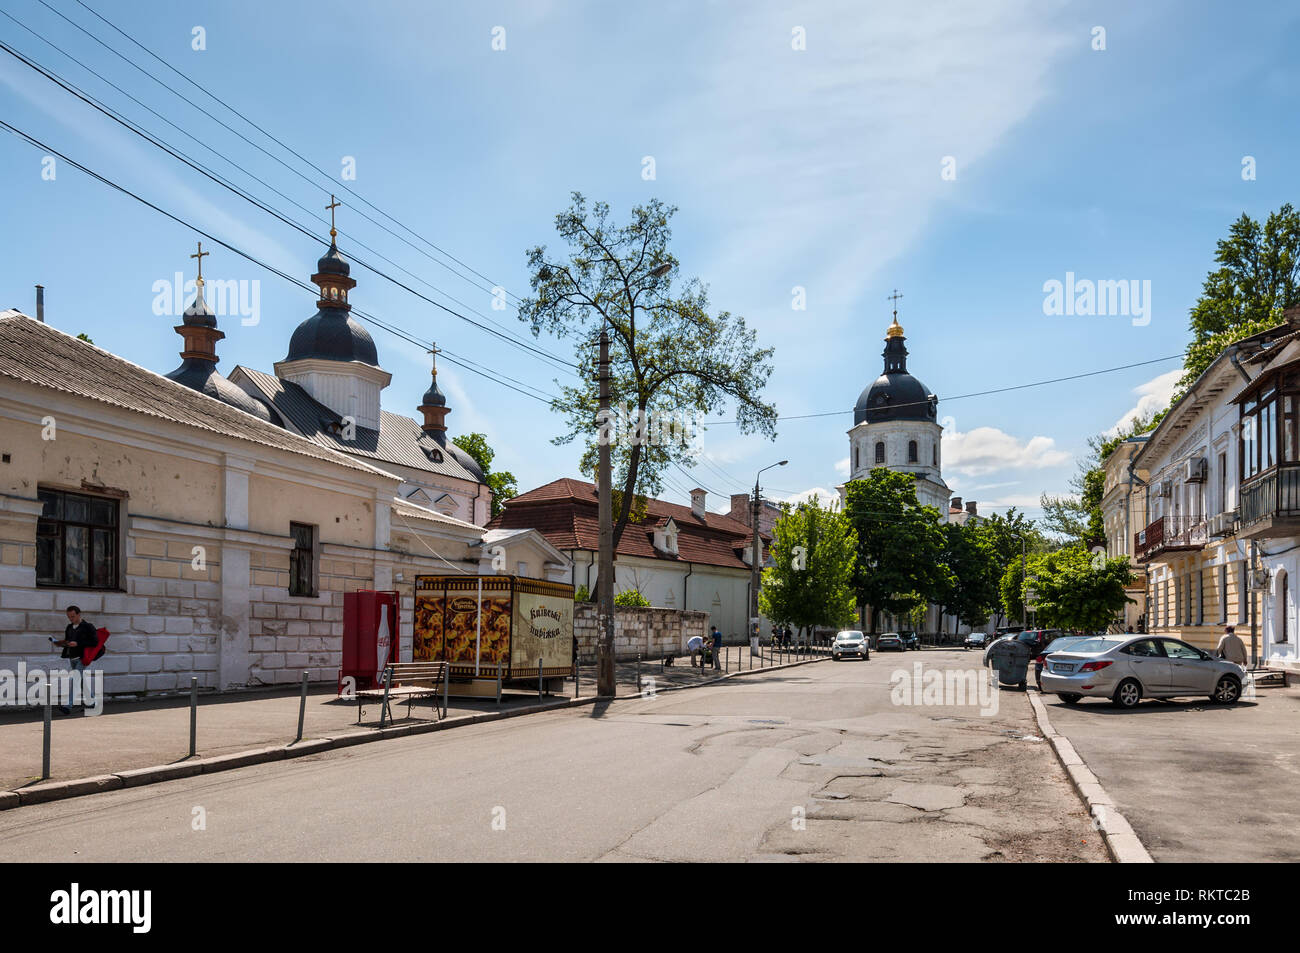 Kyiv, Ukraine - May 10, 2015: Grigory Skovoroda Street and Church of the Annunciation of the Mother of God at the Kyiv-Mohyla Academy at historic dist - Stock Image